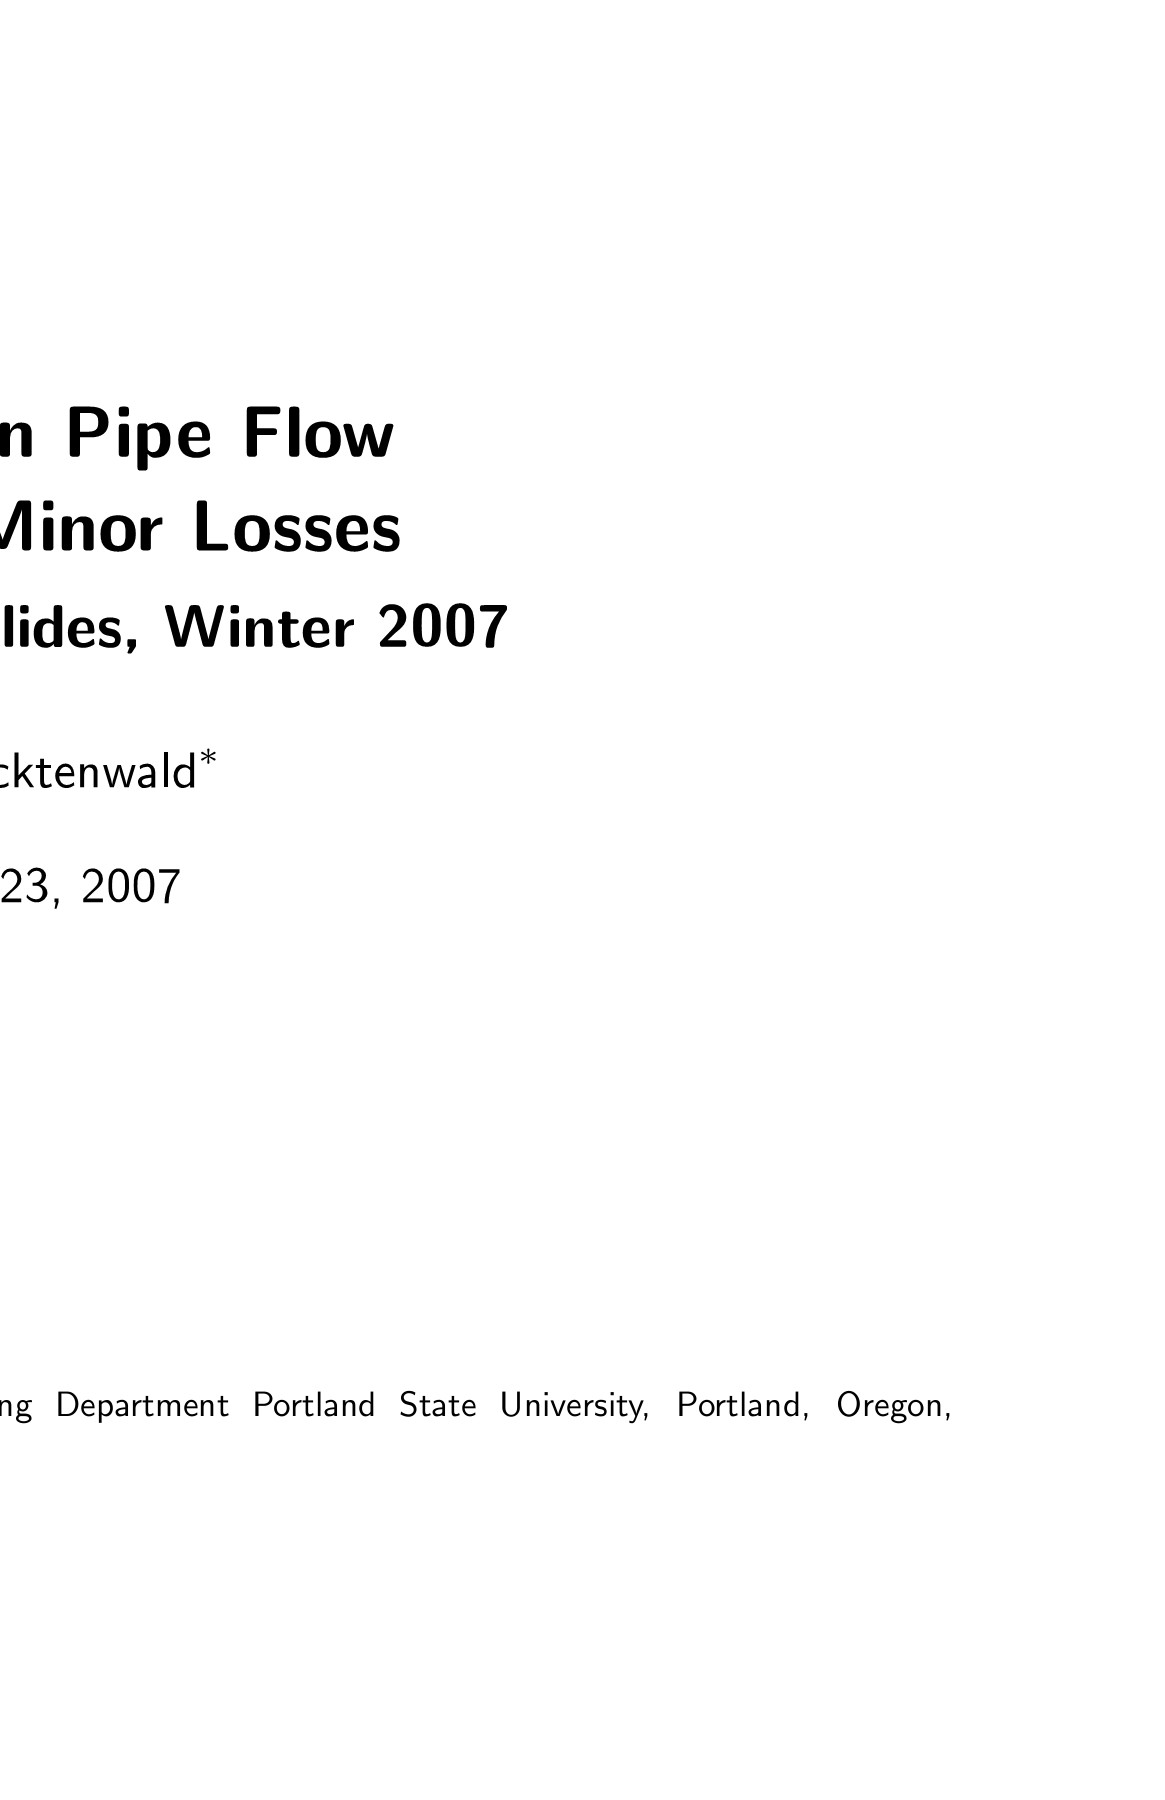 Head Loss in Pipe Flow Major and Minor Losses - TheCAT